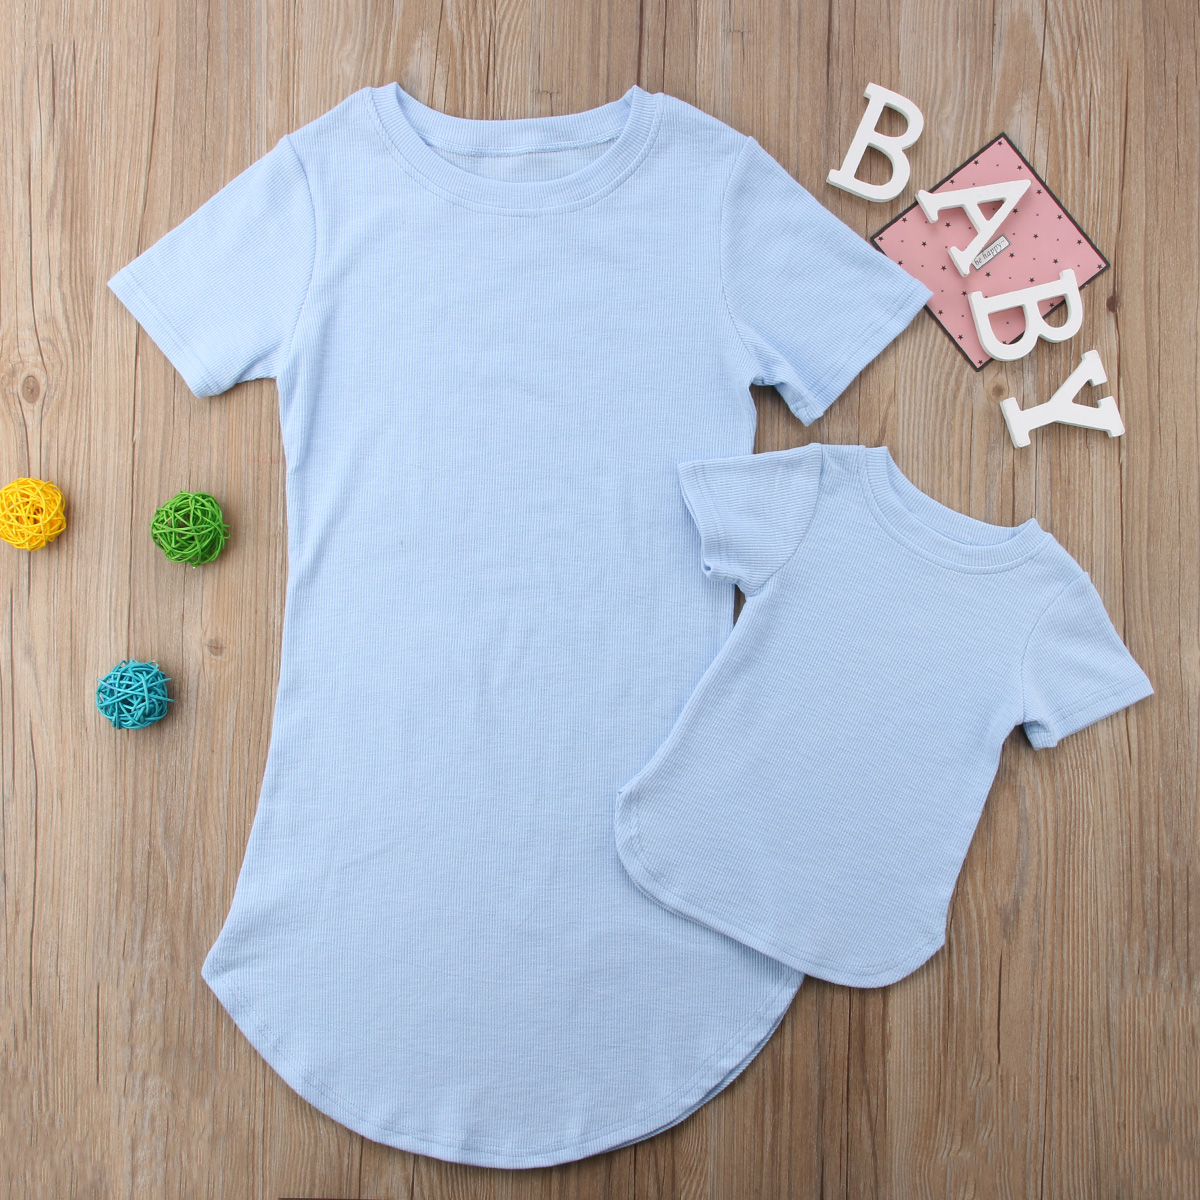 HTB1 FGjKf9TBuNjy0Fcq6zeiFXal 2019 Summer Mom Daughter Short Sleeve T shirt Dress Family Matching Outfits Baby Kid Women Party Dresses Cotton Clothes Dropship